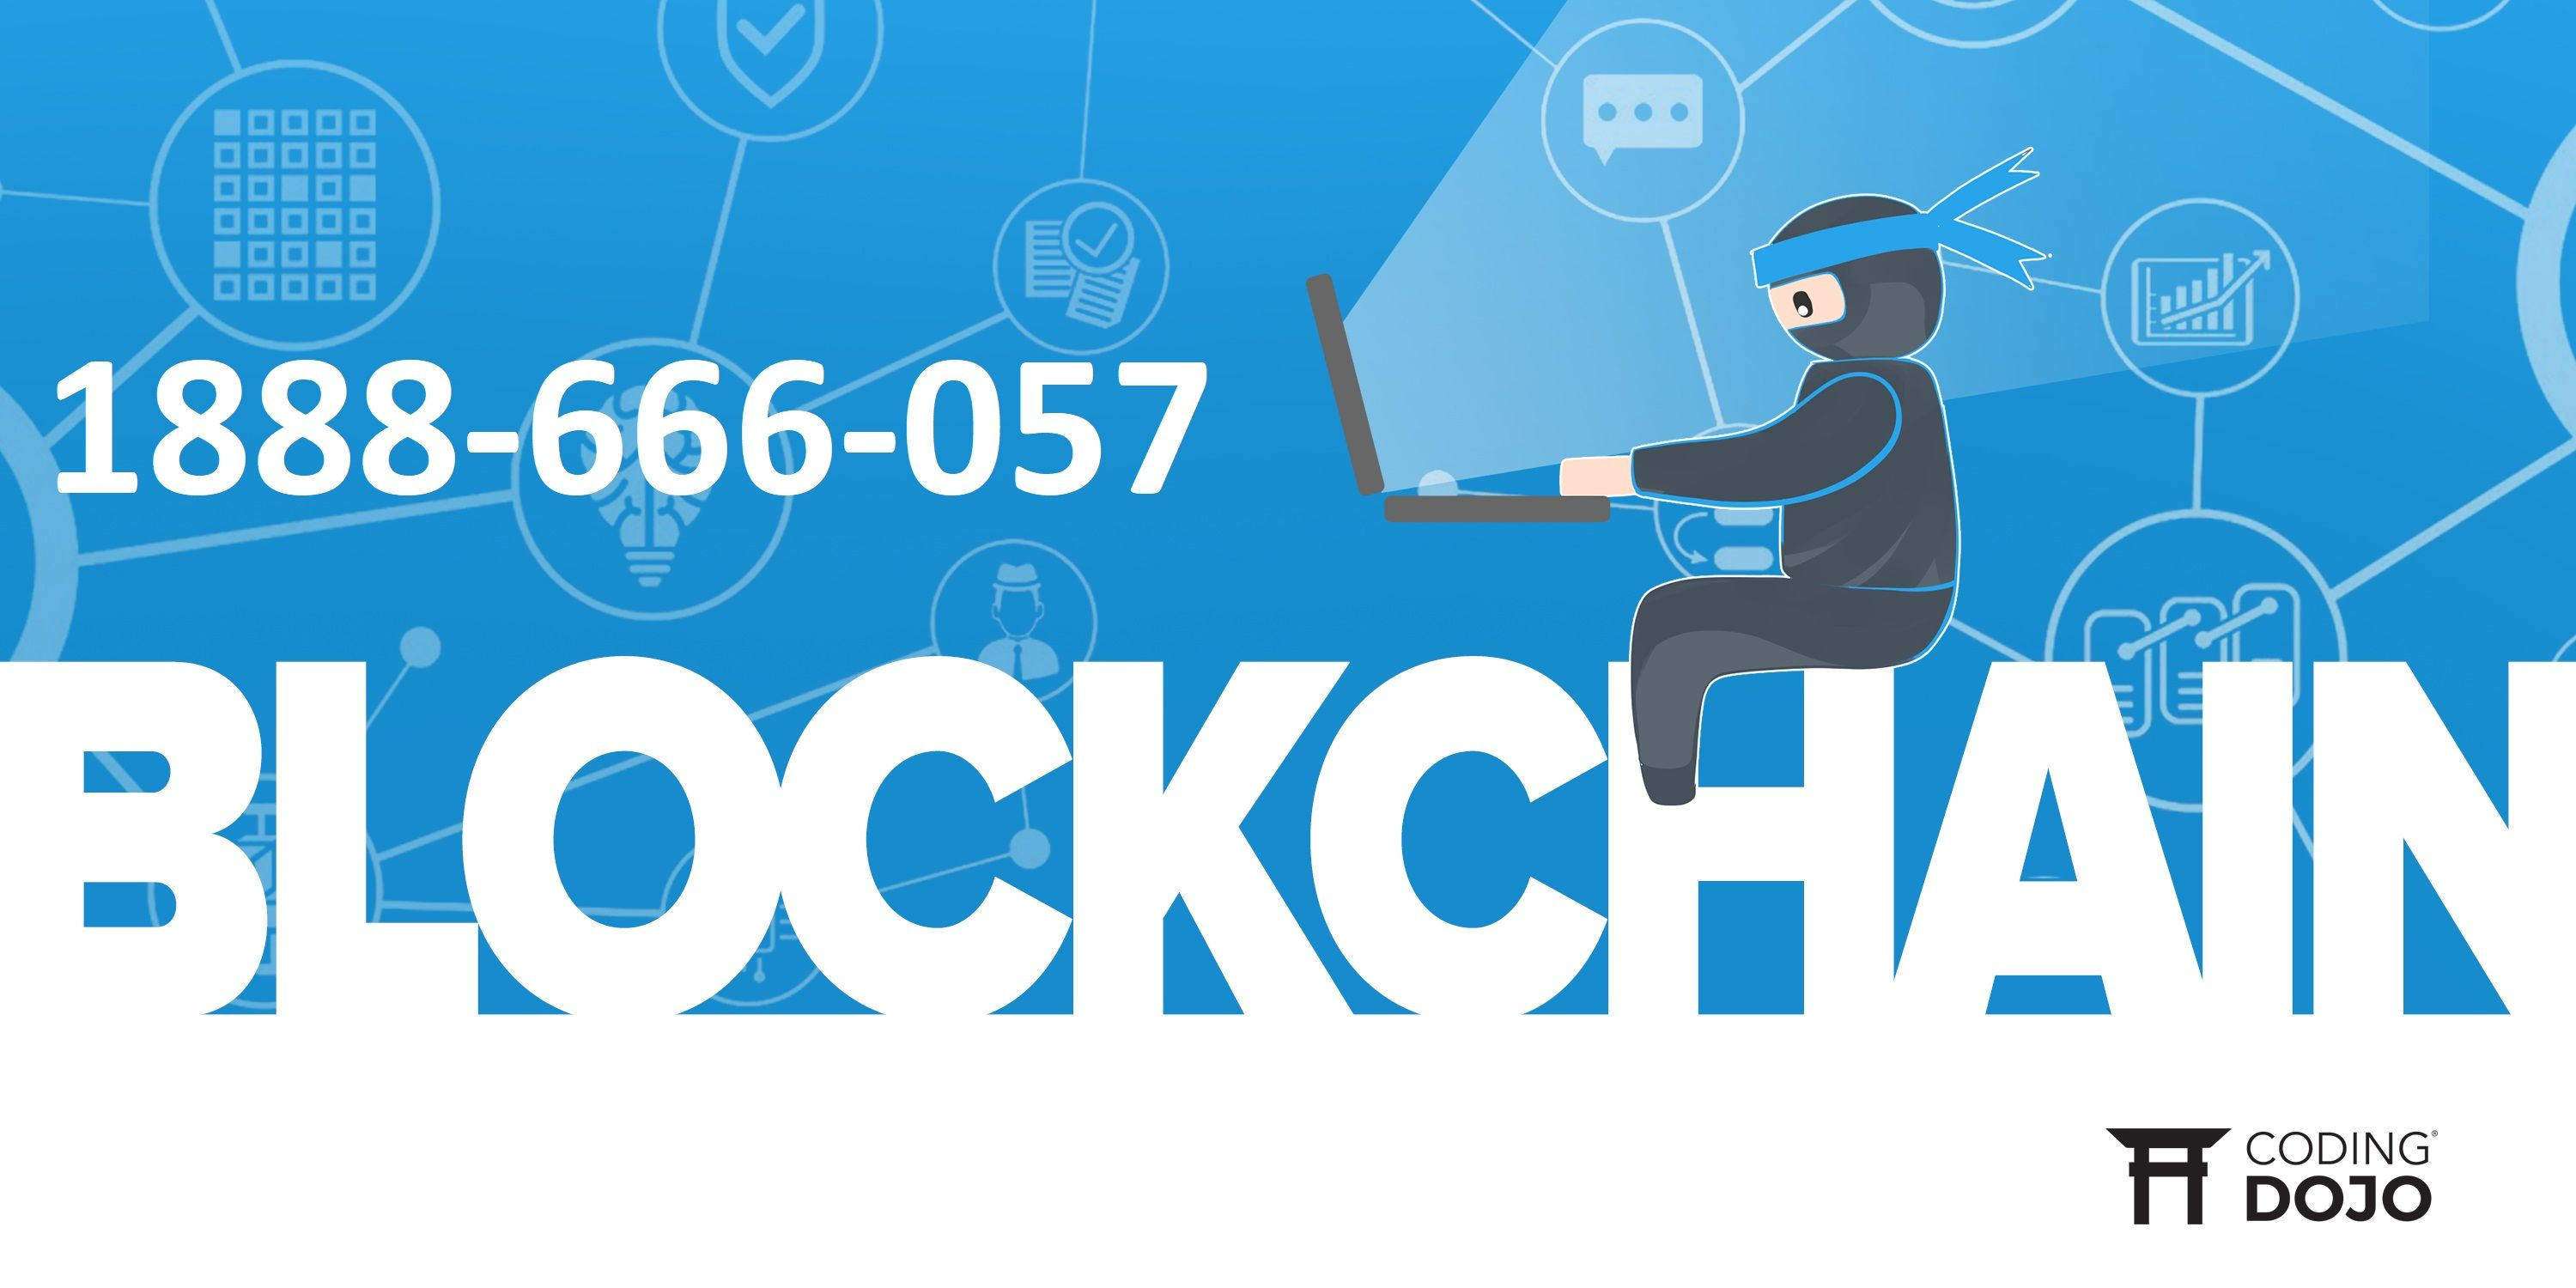 blockchain wallet support phone number